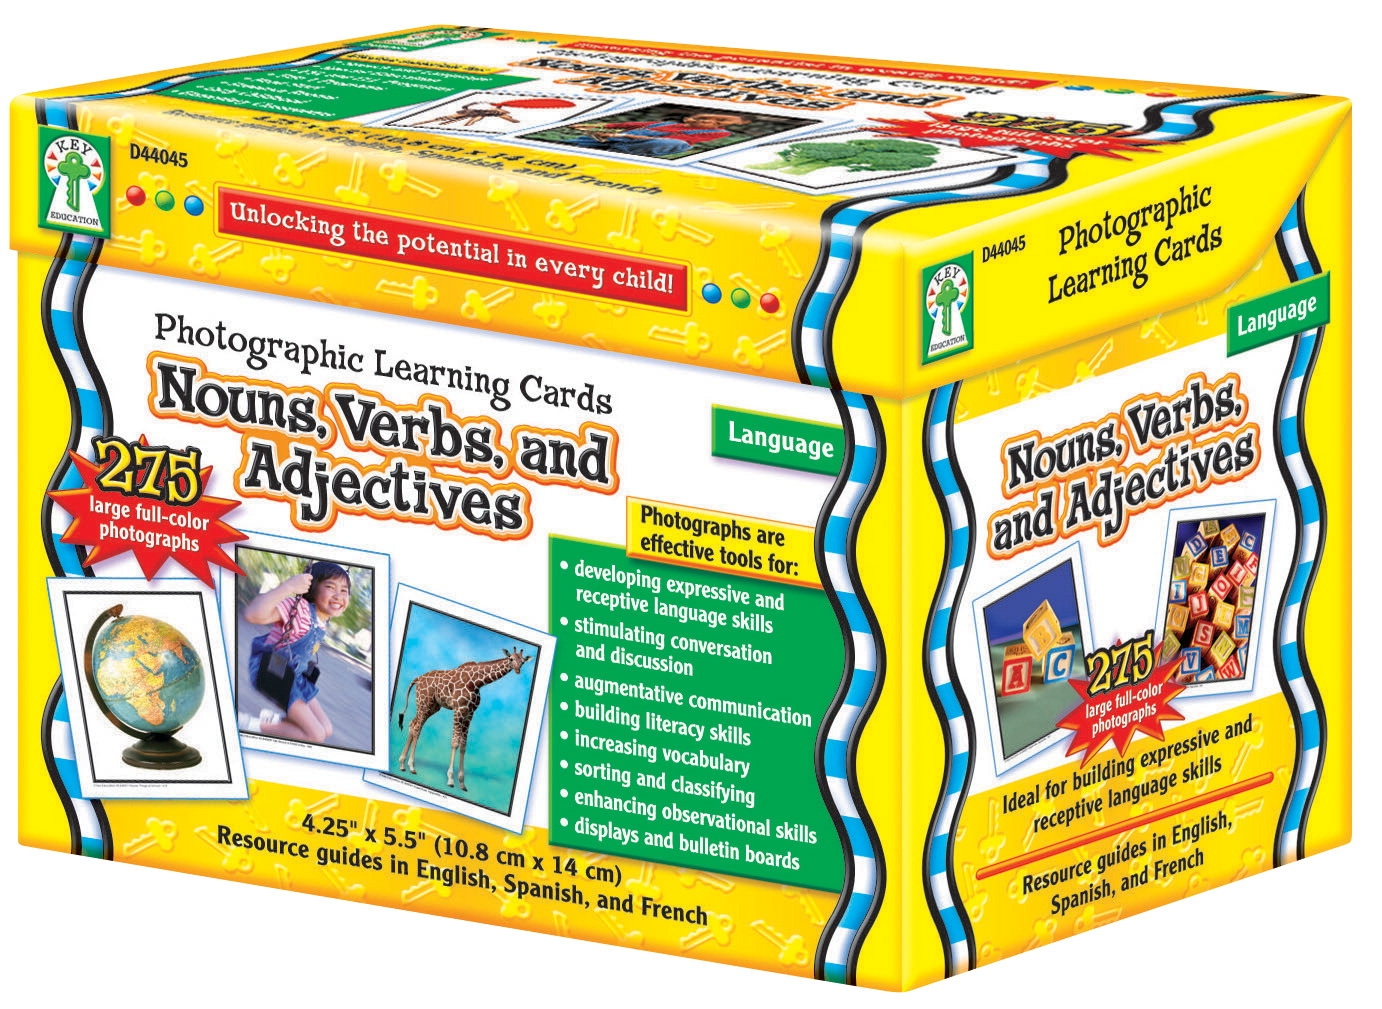 Special Needs Children Special Needs Special Needs Sensory Resources Books - 1329415 - Carson-dellosa Nouns; Verbs And Adjectives Photographic Learning Cards 1329415